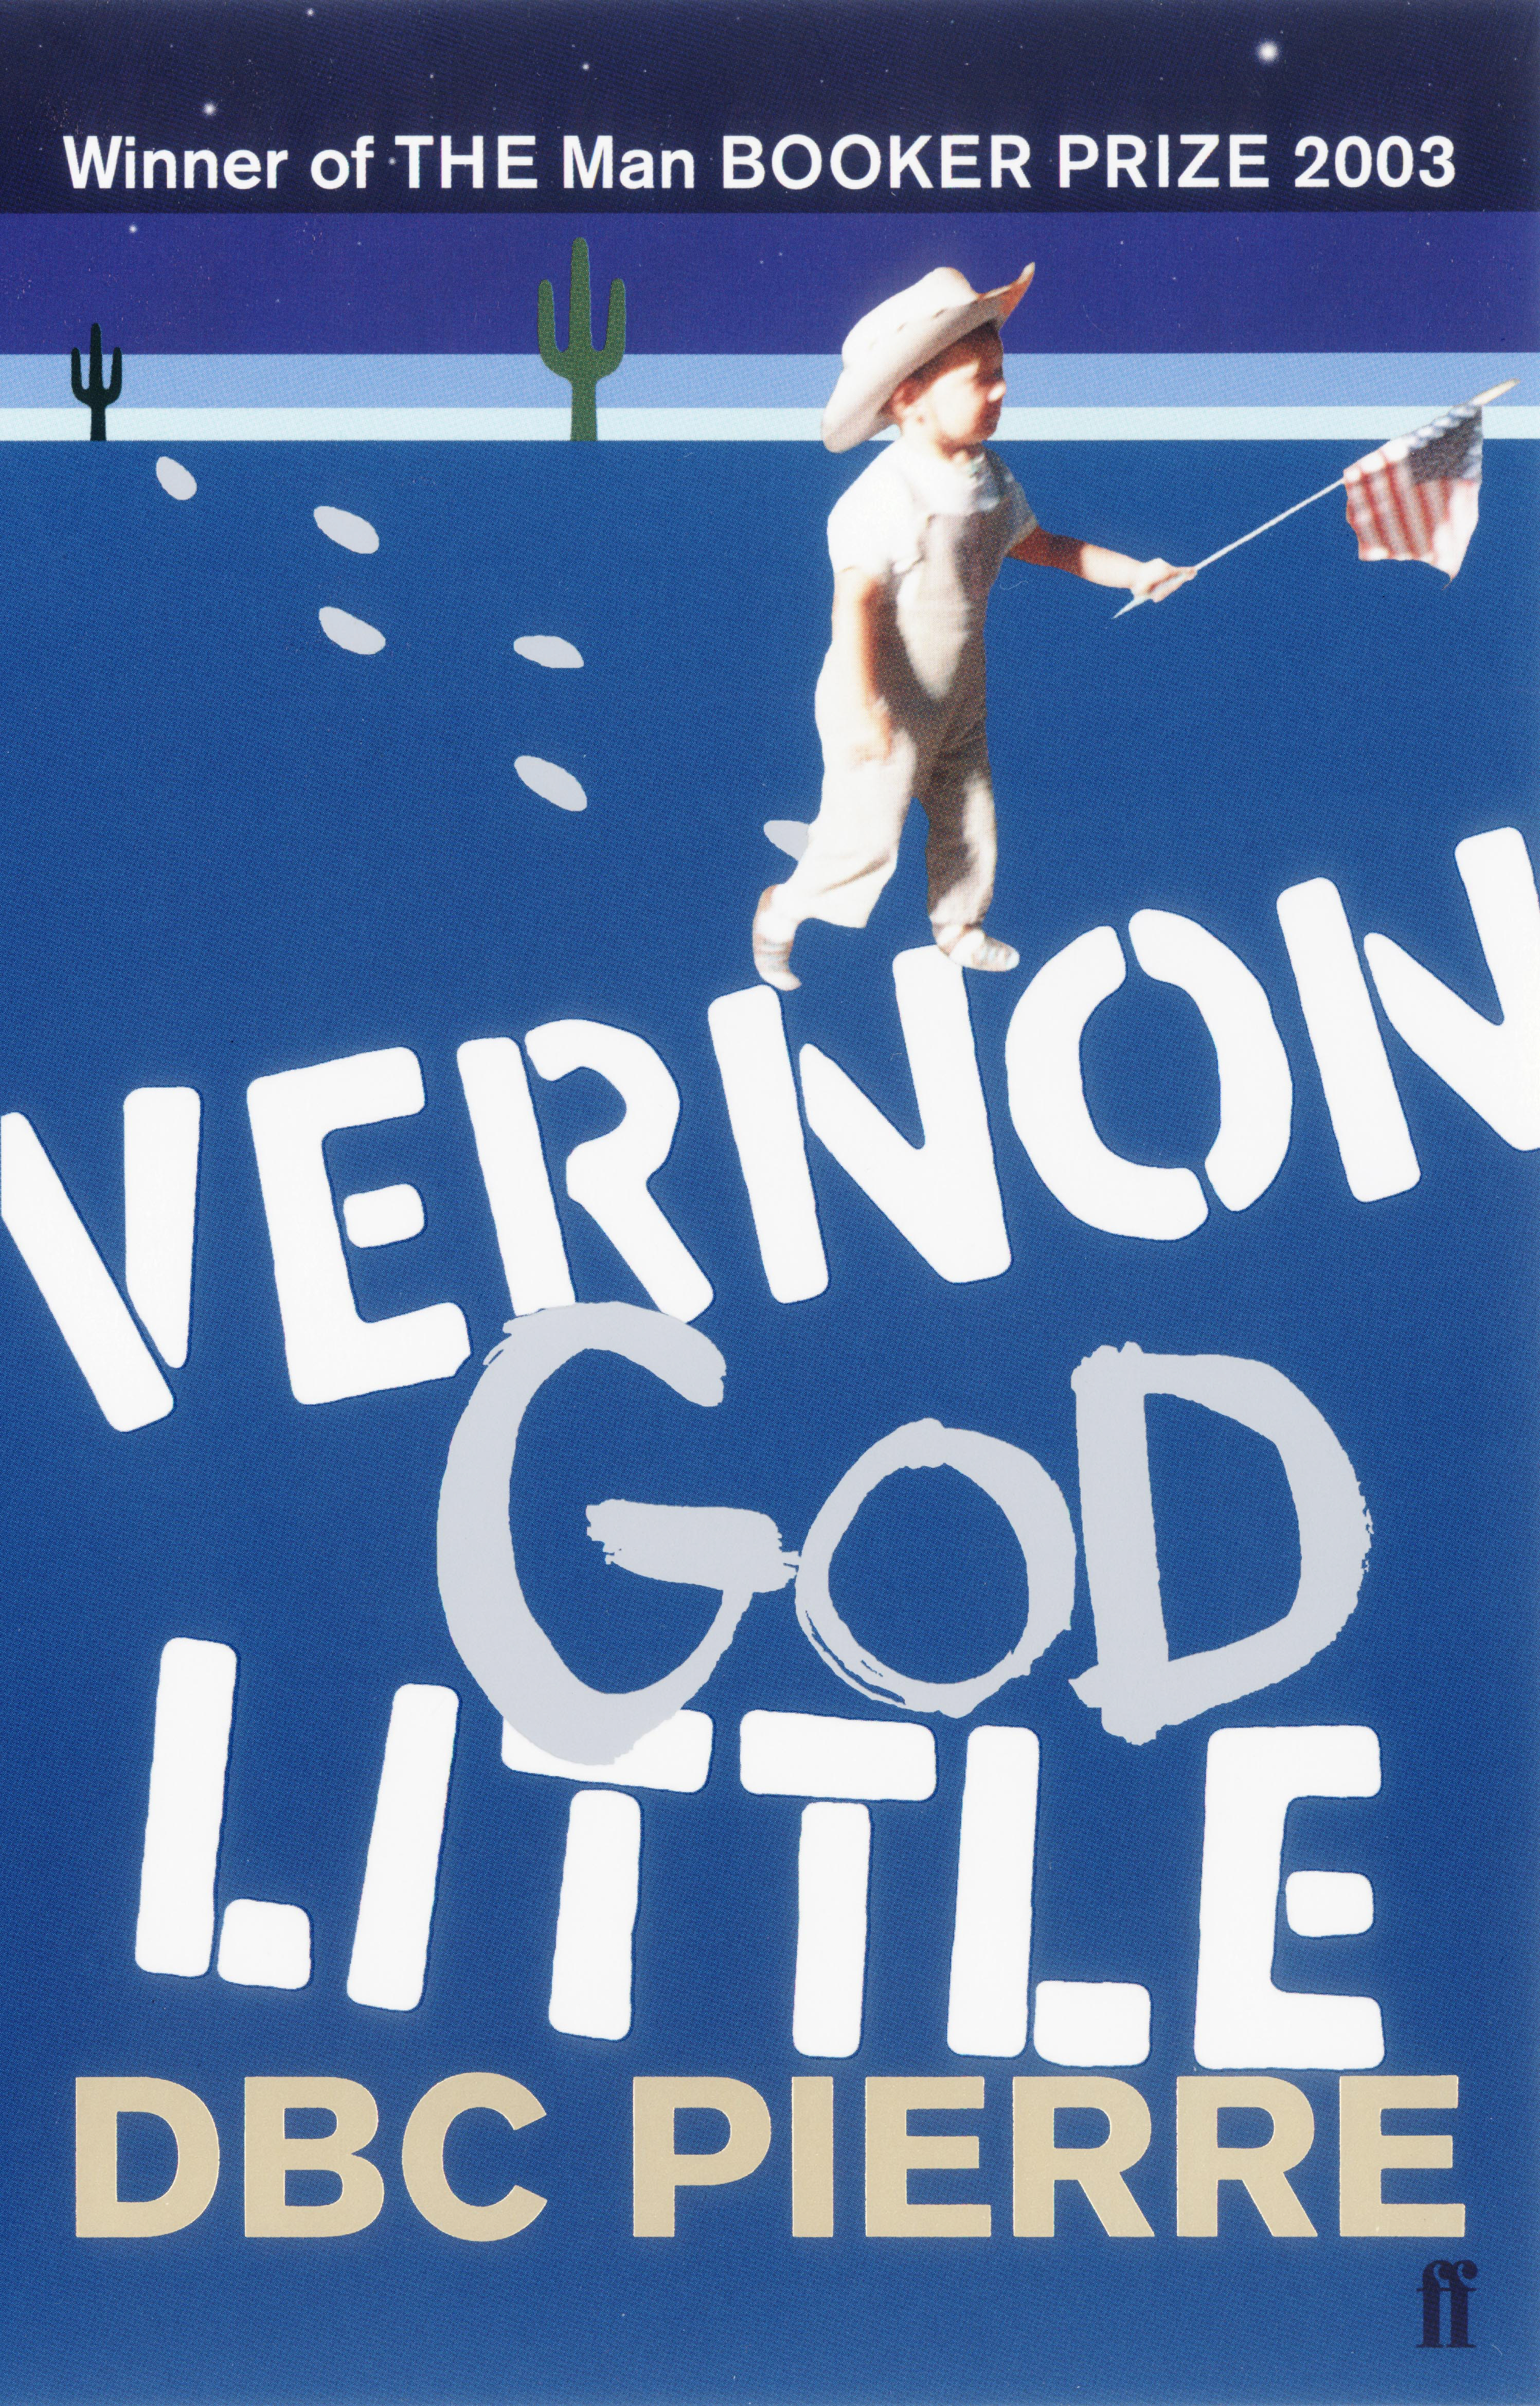 Vernon God Little